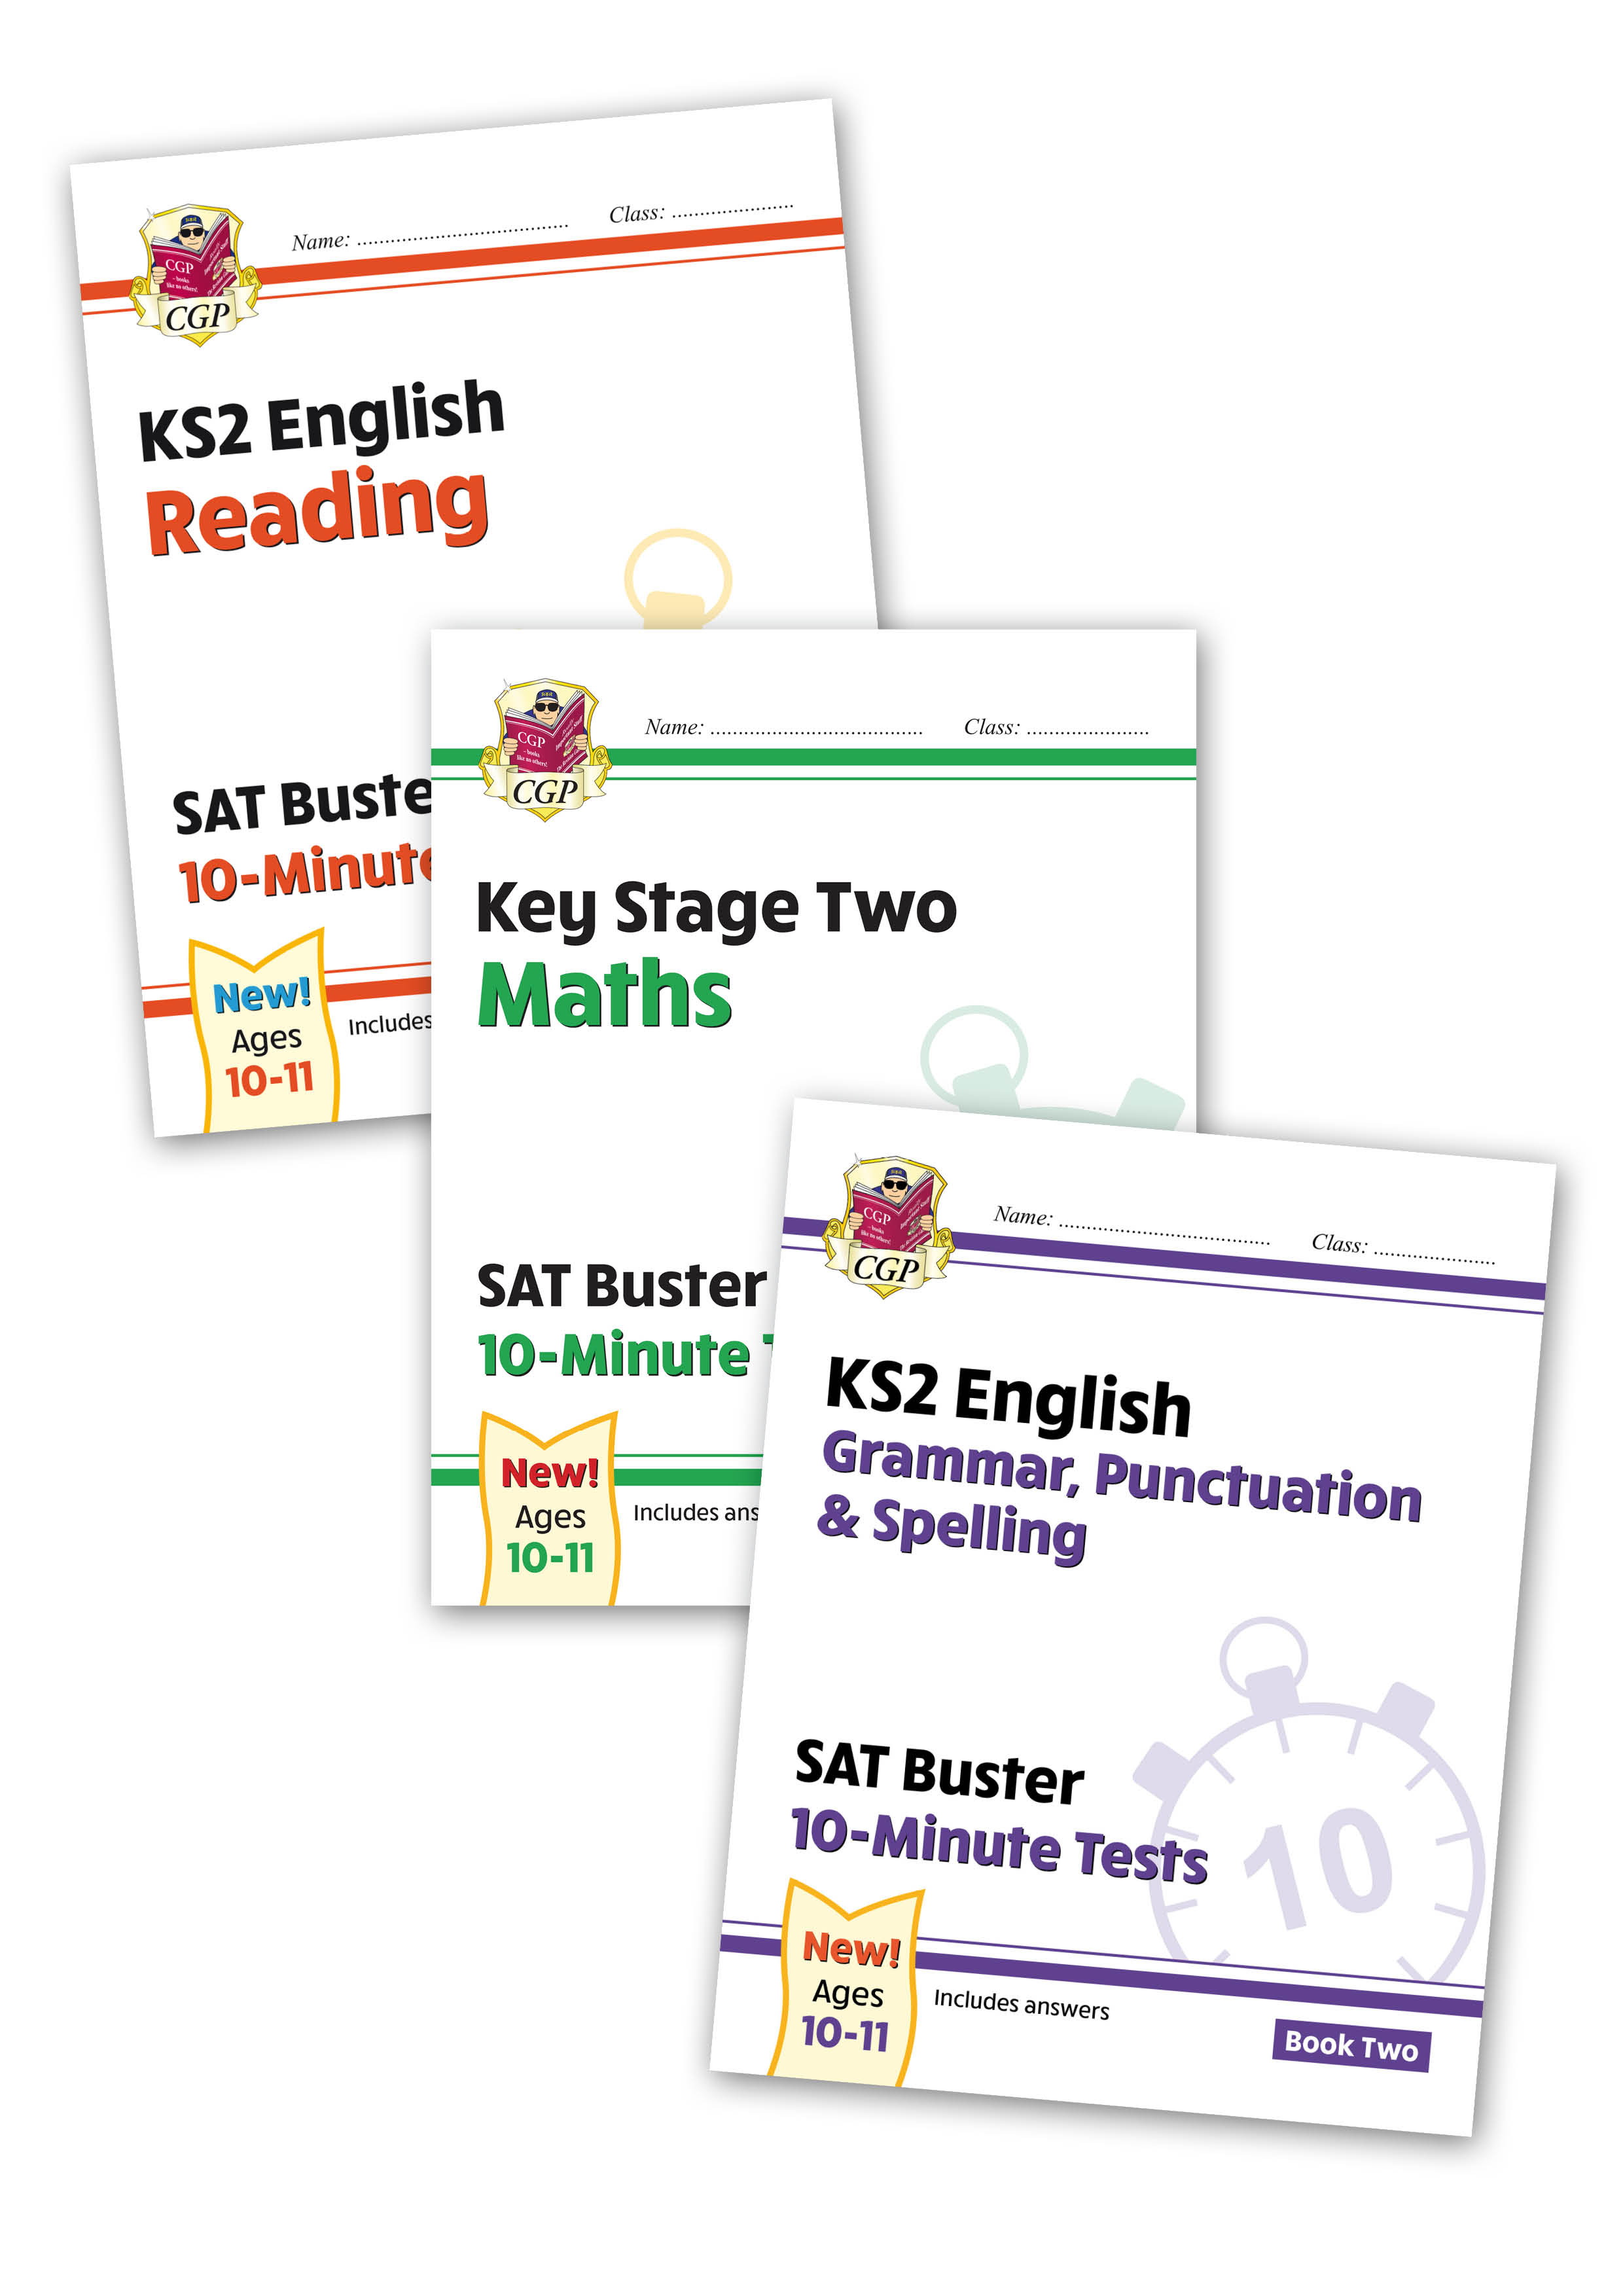 EMXB222 - New Complete KS2 Maths and English 10-Minute Test SAT Buster Book 2 Bundle (for the 2020 t